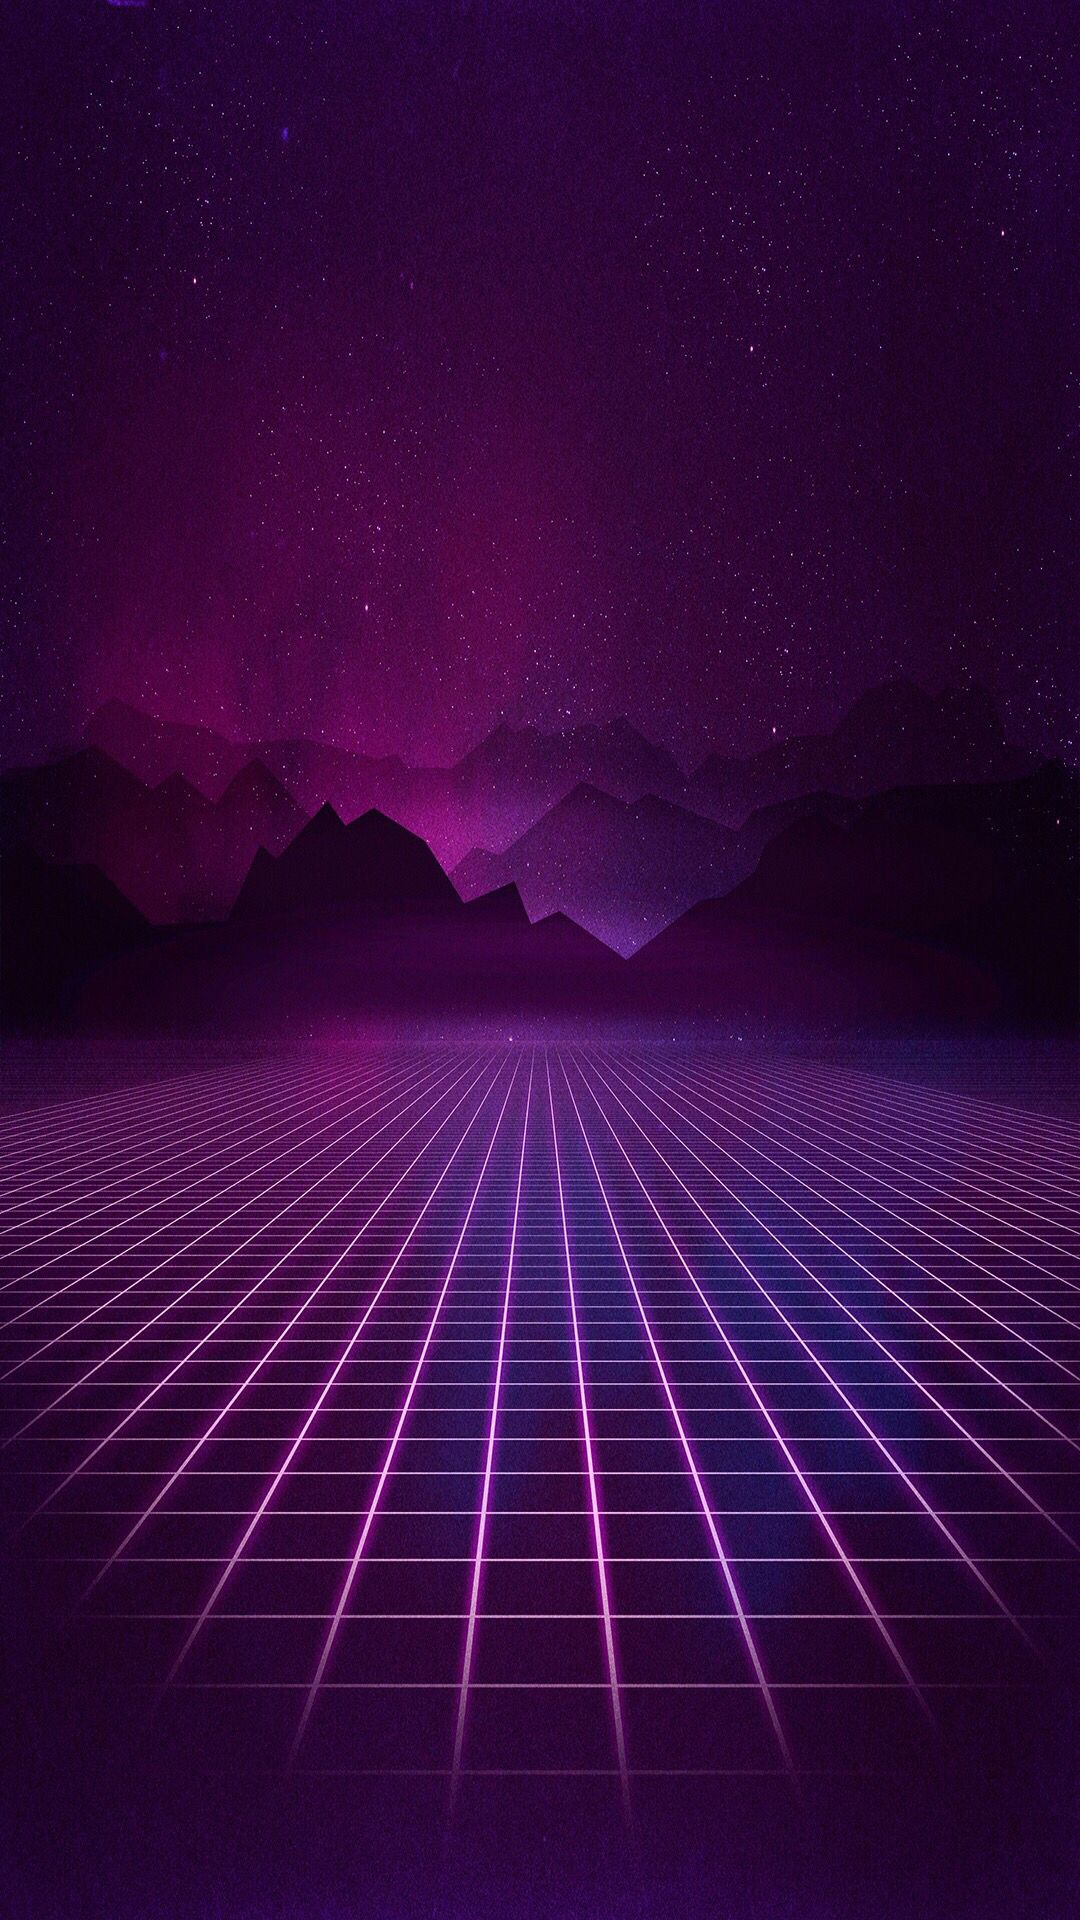 Iphone Vaporwave Wallpapers Kolpaper Awesome Free Hd Wallpapers